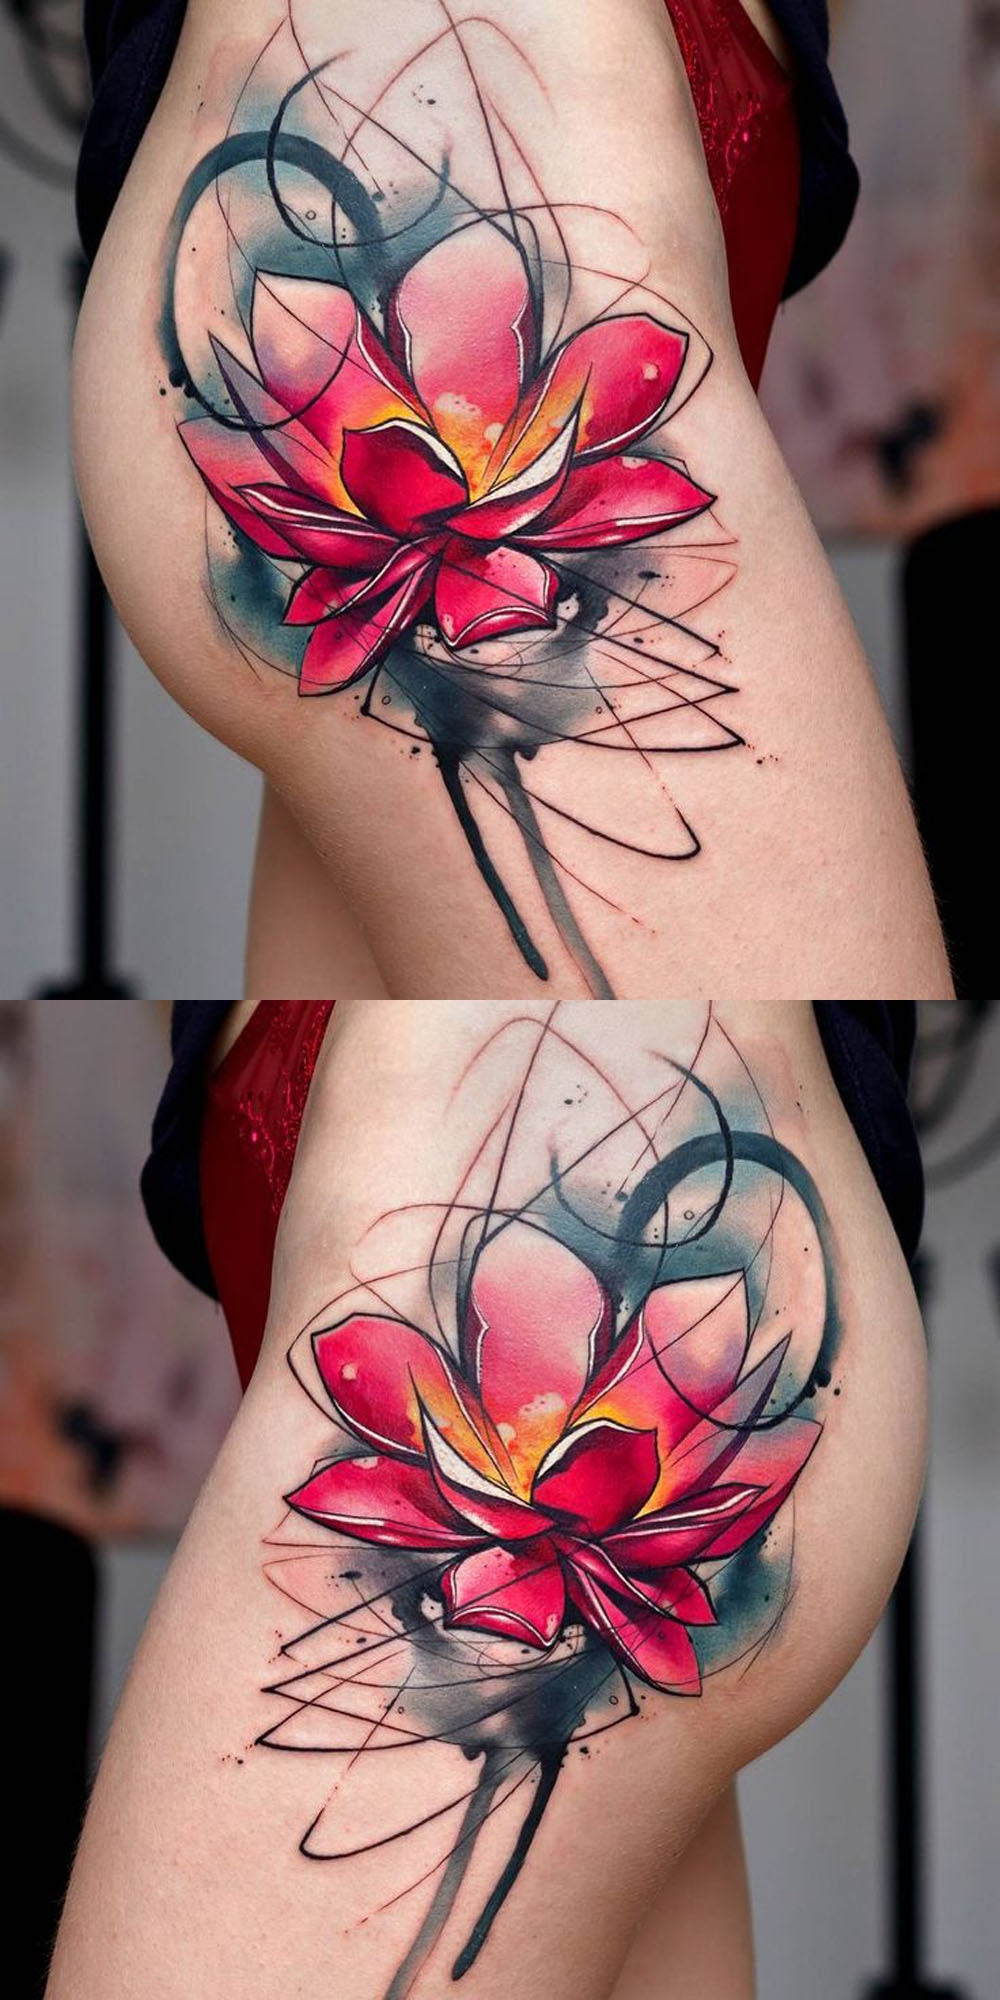 Popular Watercolor Lily Lotus Side Thigh Hip Tattoo Ideas for Women -  ideas de tatuaje de cadera de loto para las mujeres - www.MyBodiArt.com